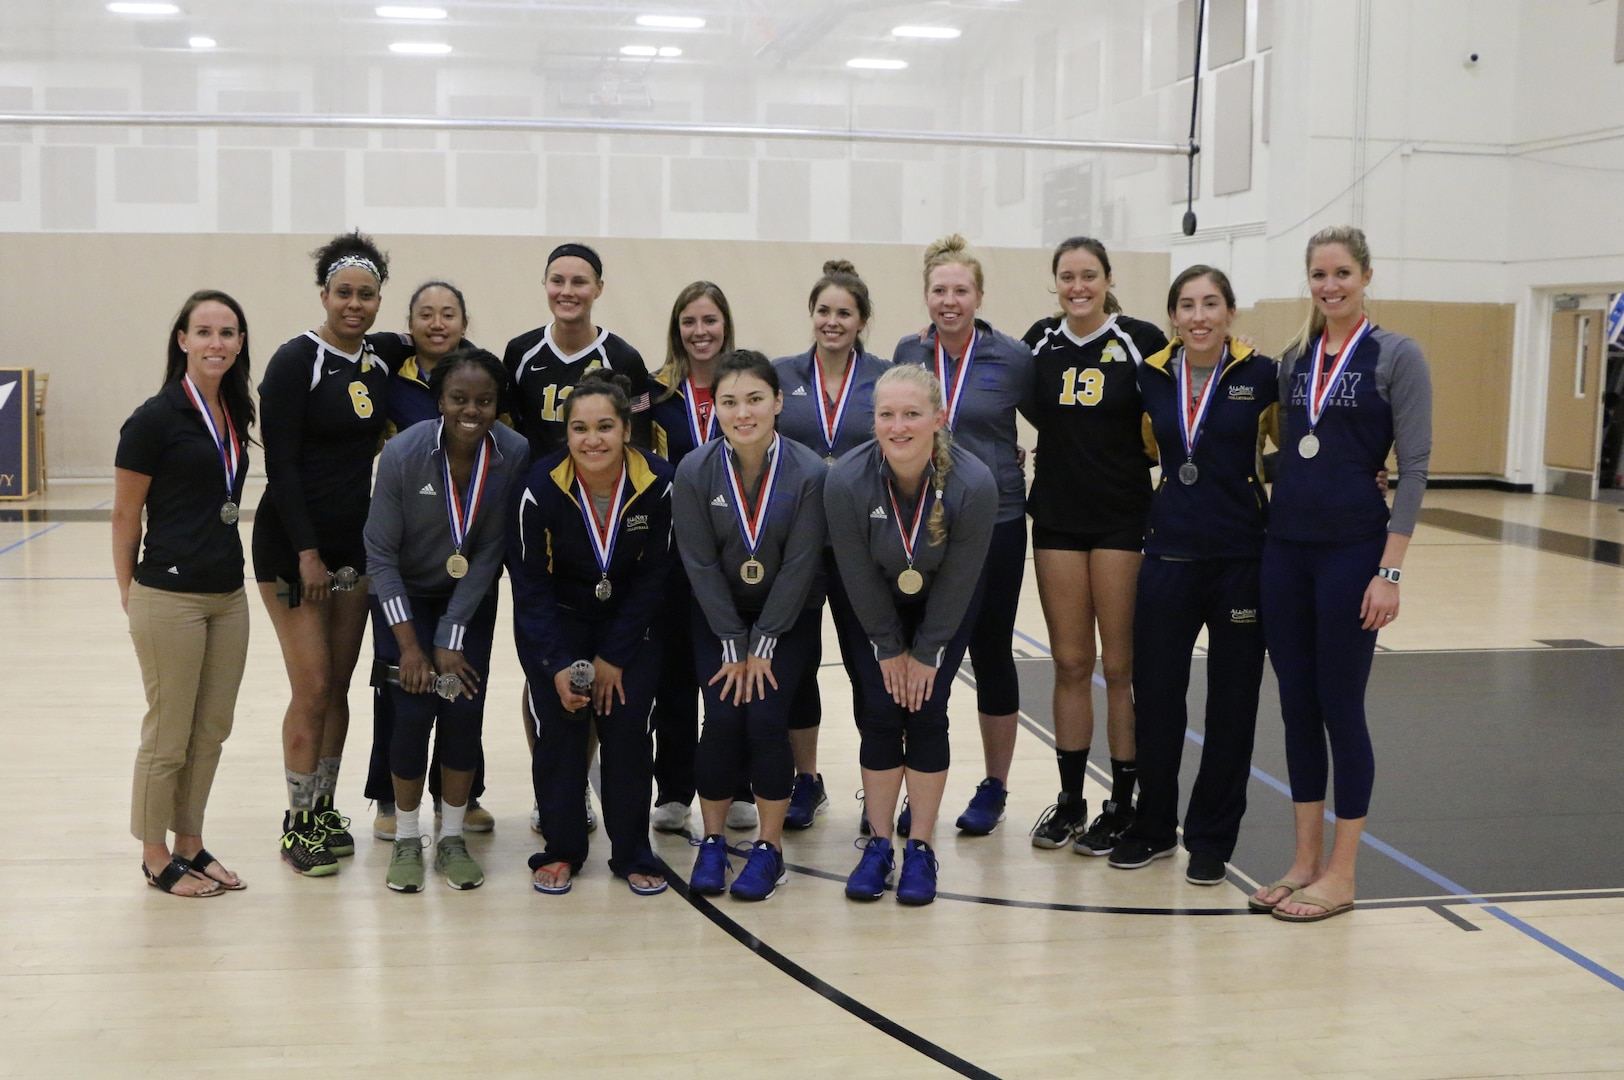 Your 2017 U.S. Armed Forces Women's Volleyball Team.  Selections made immediately following the last match of the 2017 Armed Forces Women's Volleyball Championship at Naval Station Mayport, Florida held 17-21 May.  Team members include: